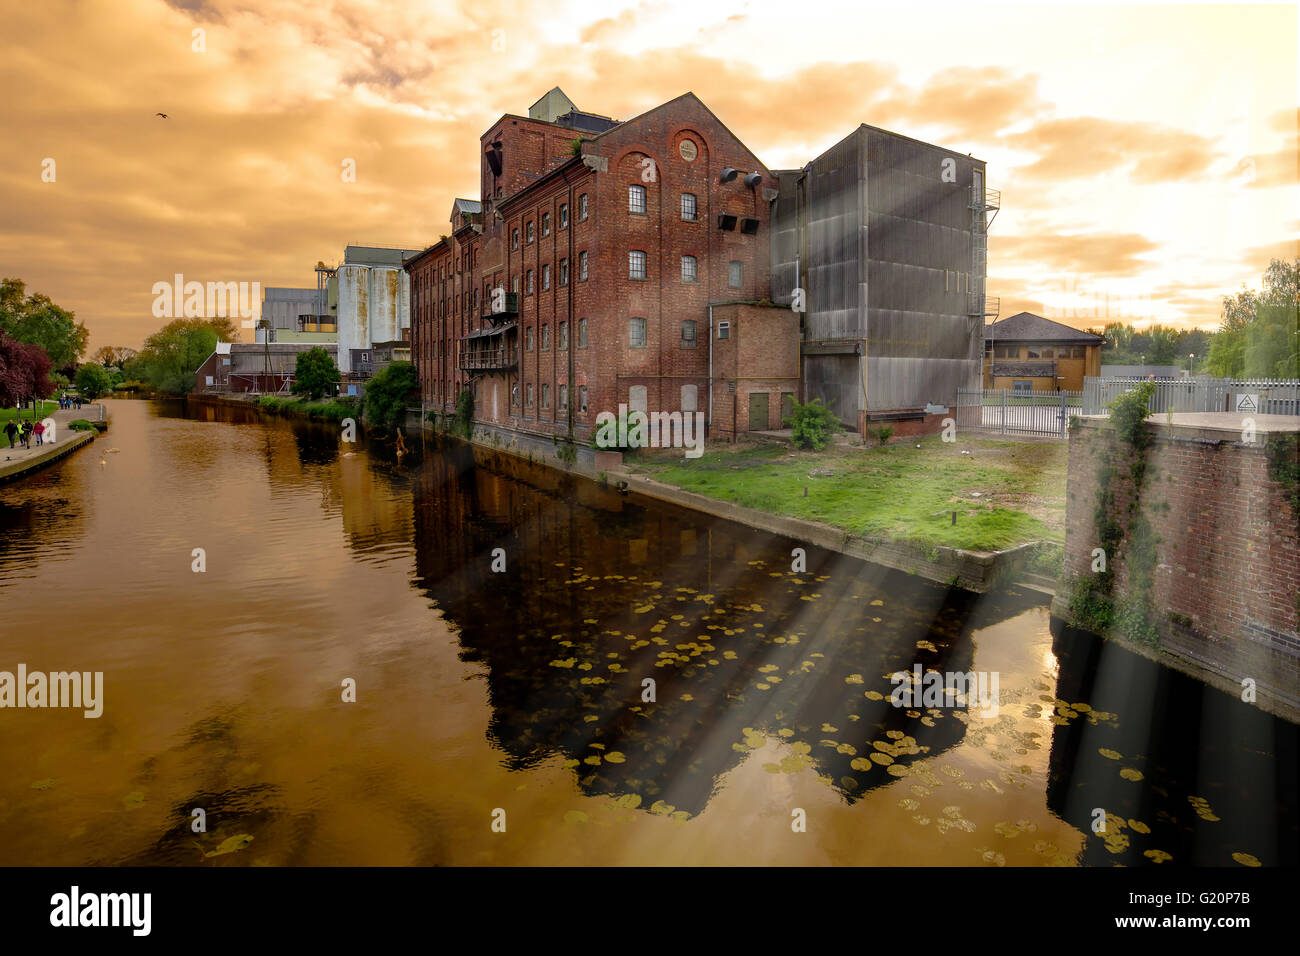 The original Whitworth's mill on the south bank of the River Nene, Wellingborough, Northants. - Stock Image